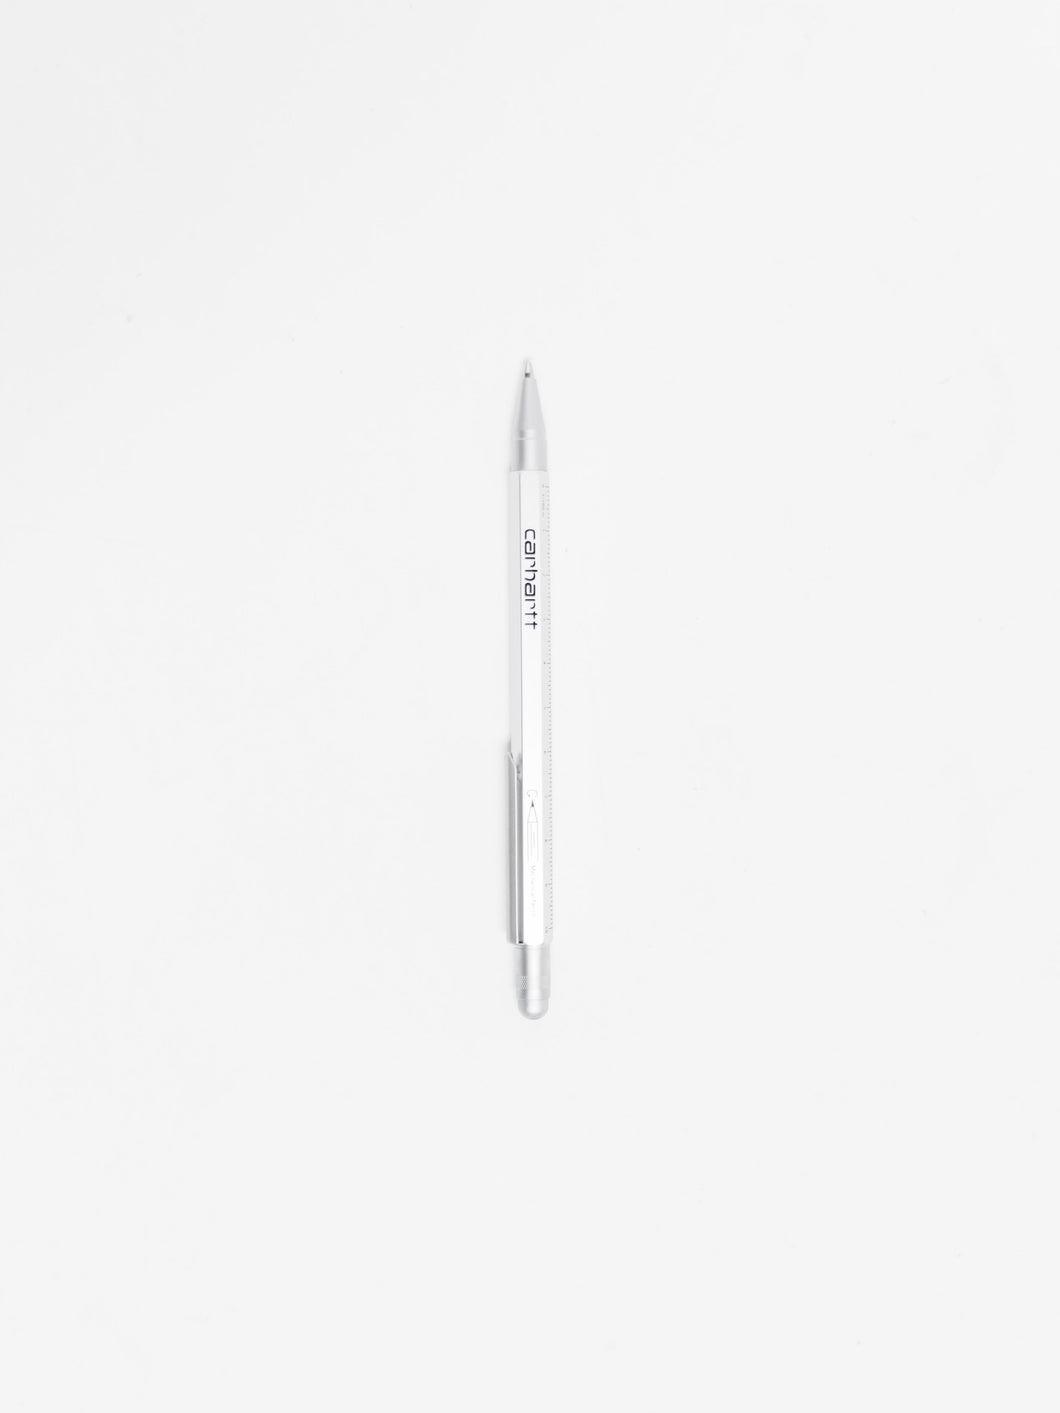 CARHARTT WIP CONSTRUCTION GRAPHITE PENCIL